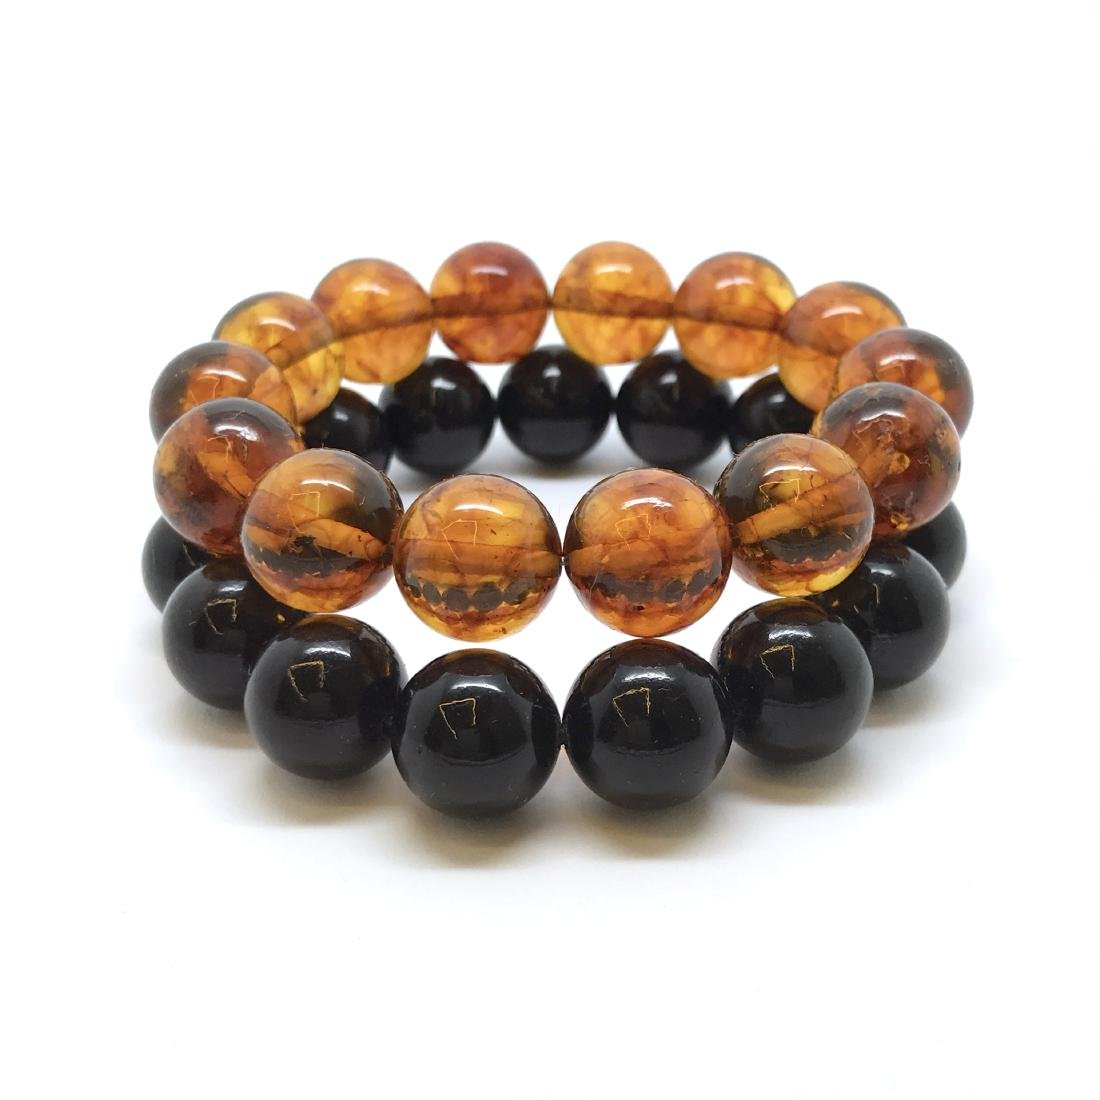 2x bracelets Baltic amber beads ø12.5mm, weight 29.5 gr